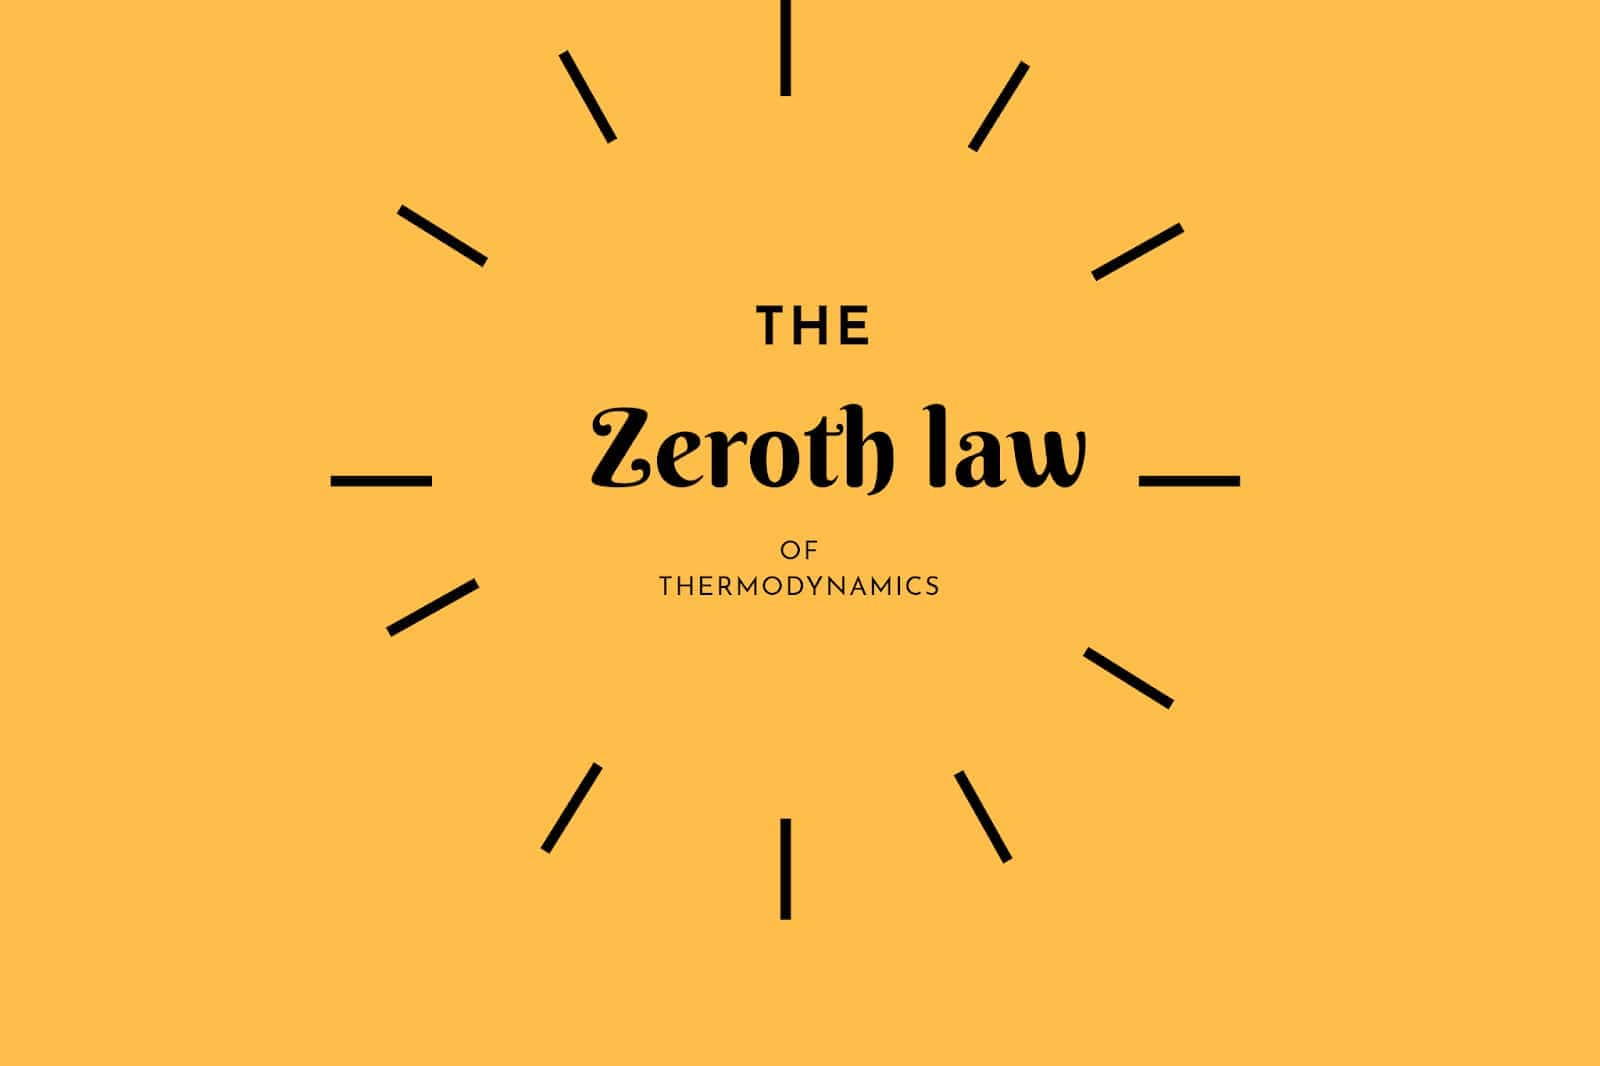 Zeroth law of thermodynamics - explained | The Mechanical post